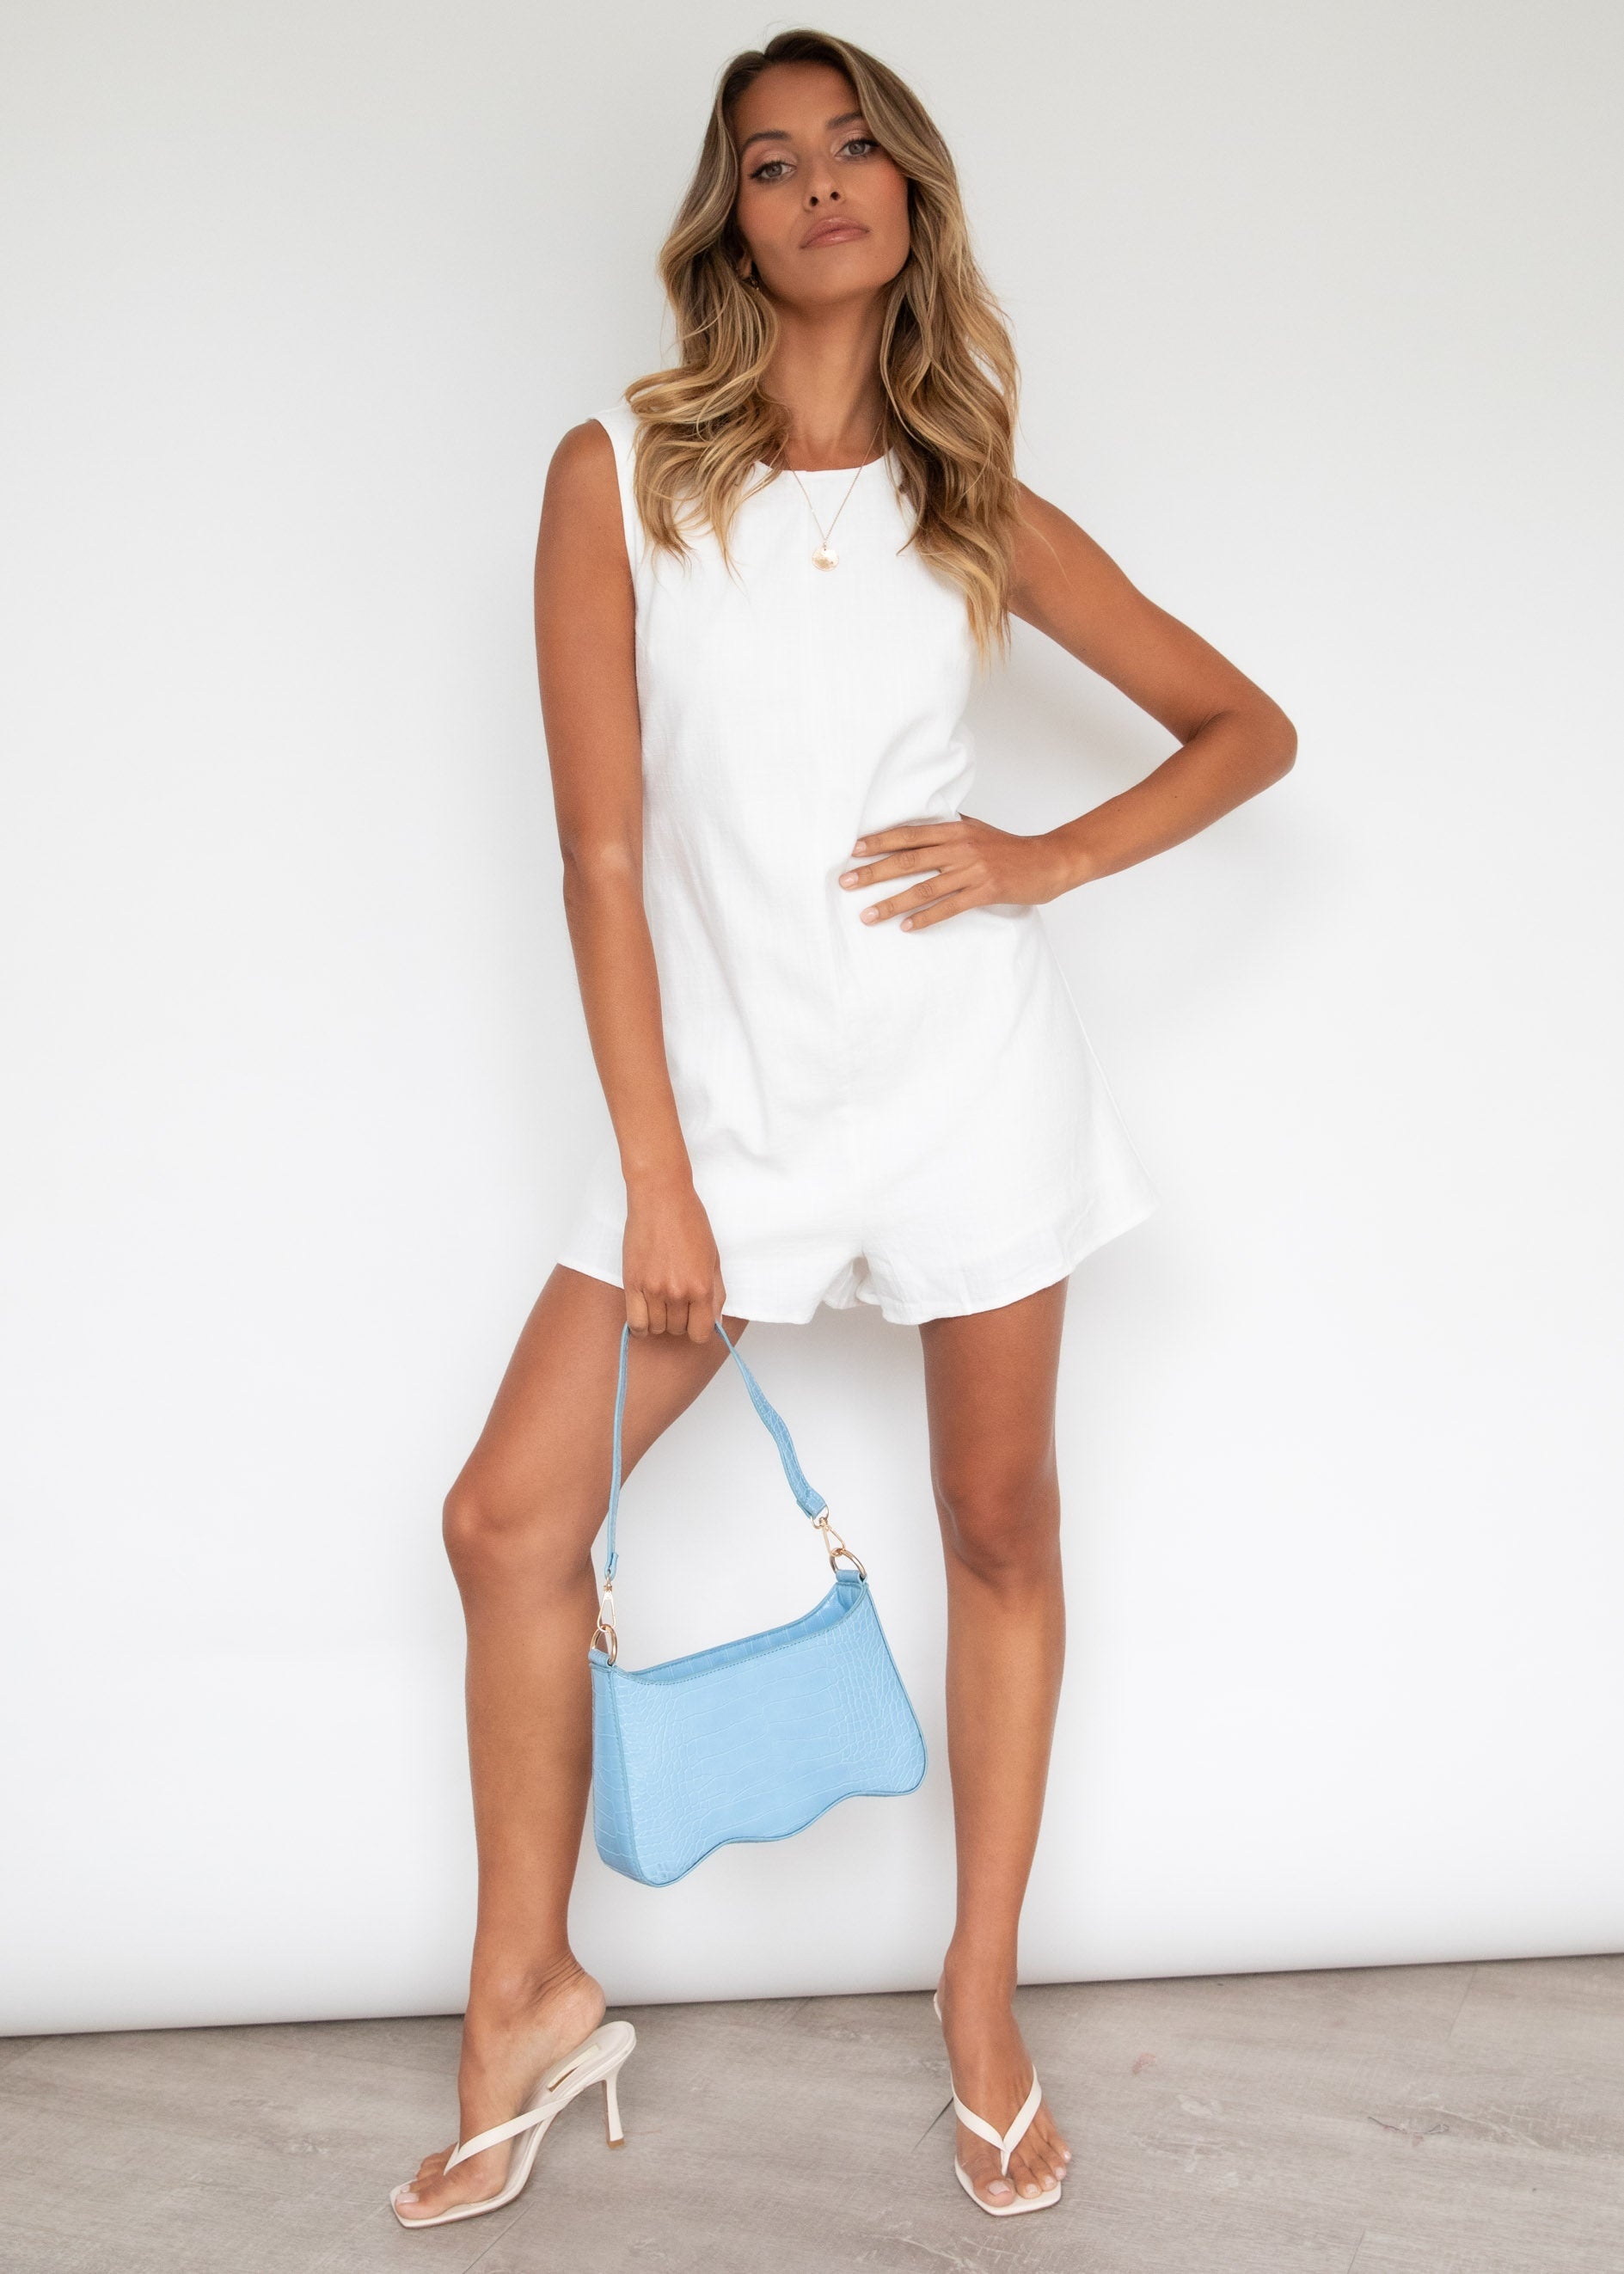 Navaeh Linen Playsuit - Off White